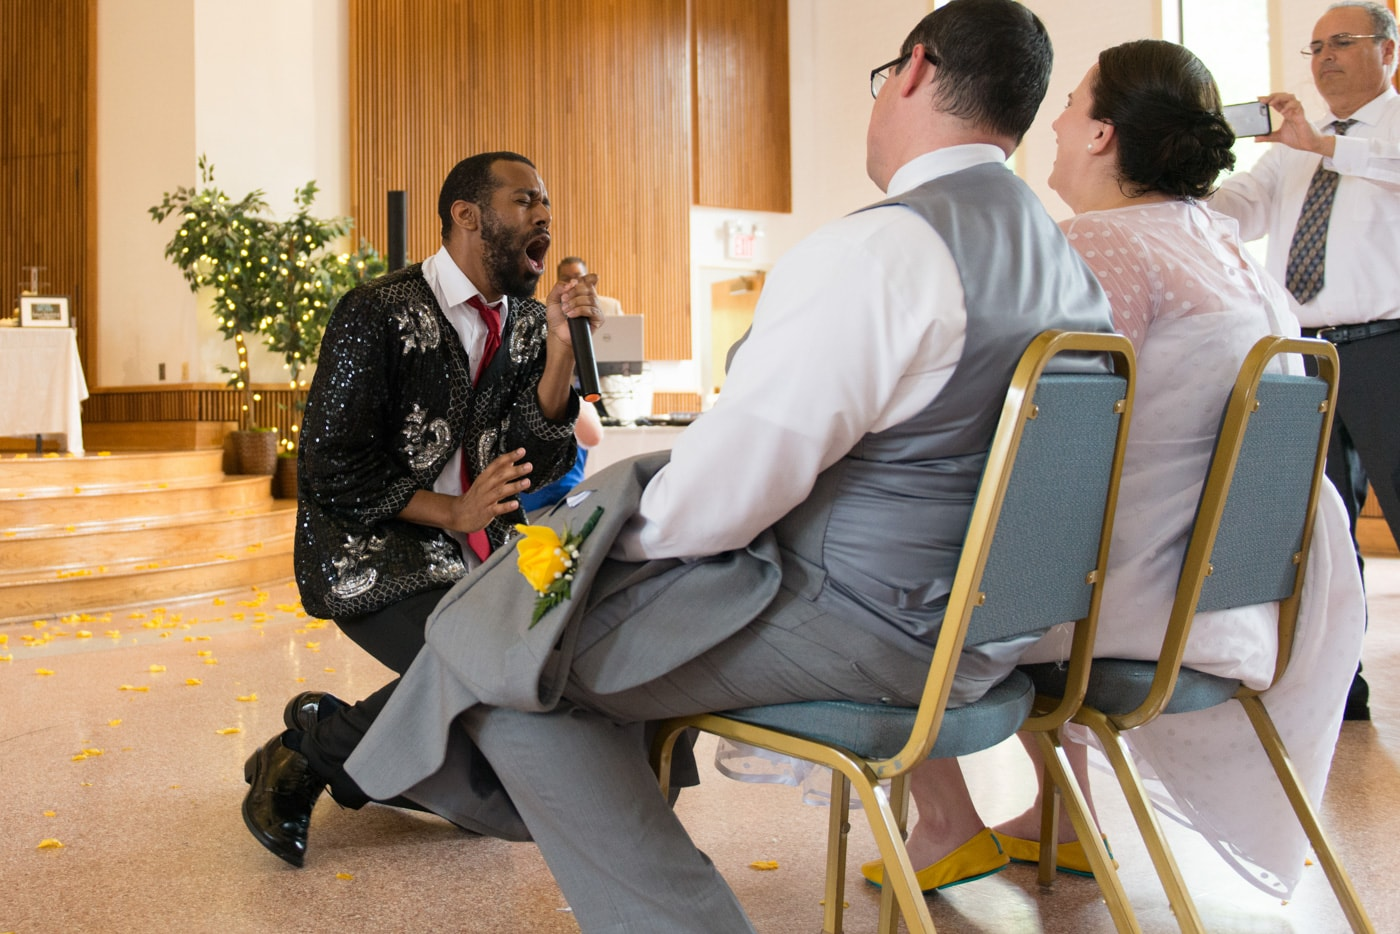 A wedding guest performs a lip sync for the seated bride and groom at St Mark Catholic Church in Vienna, Virginia